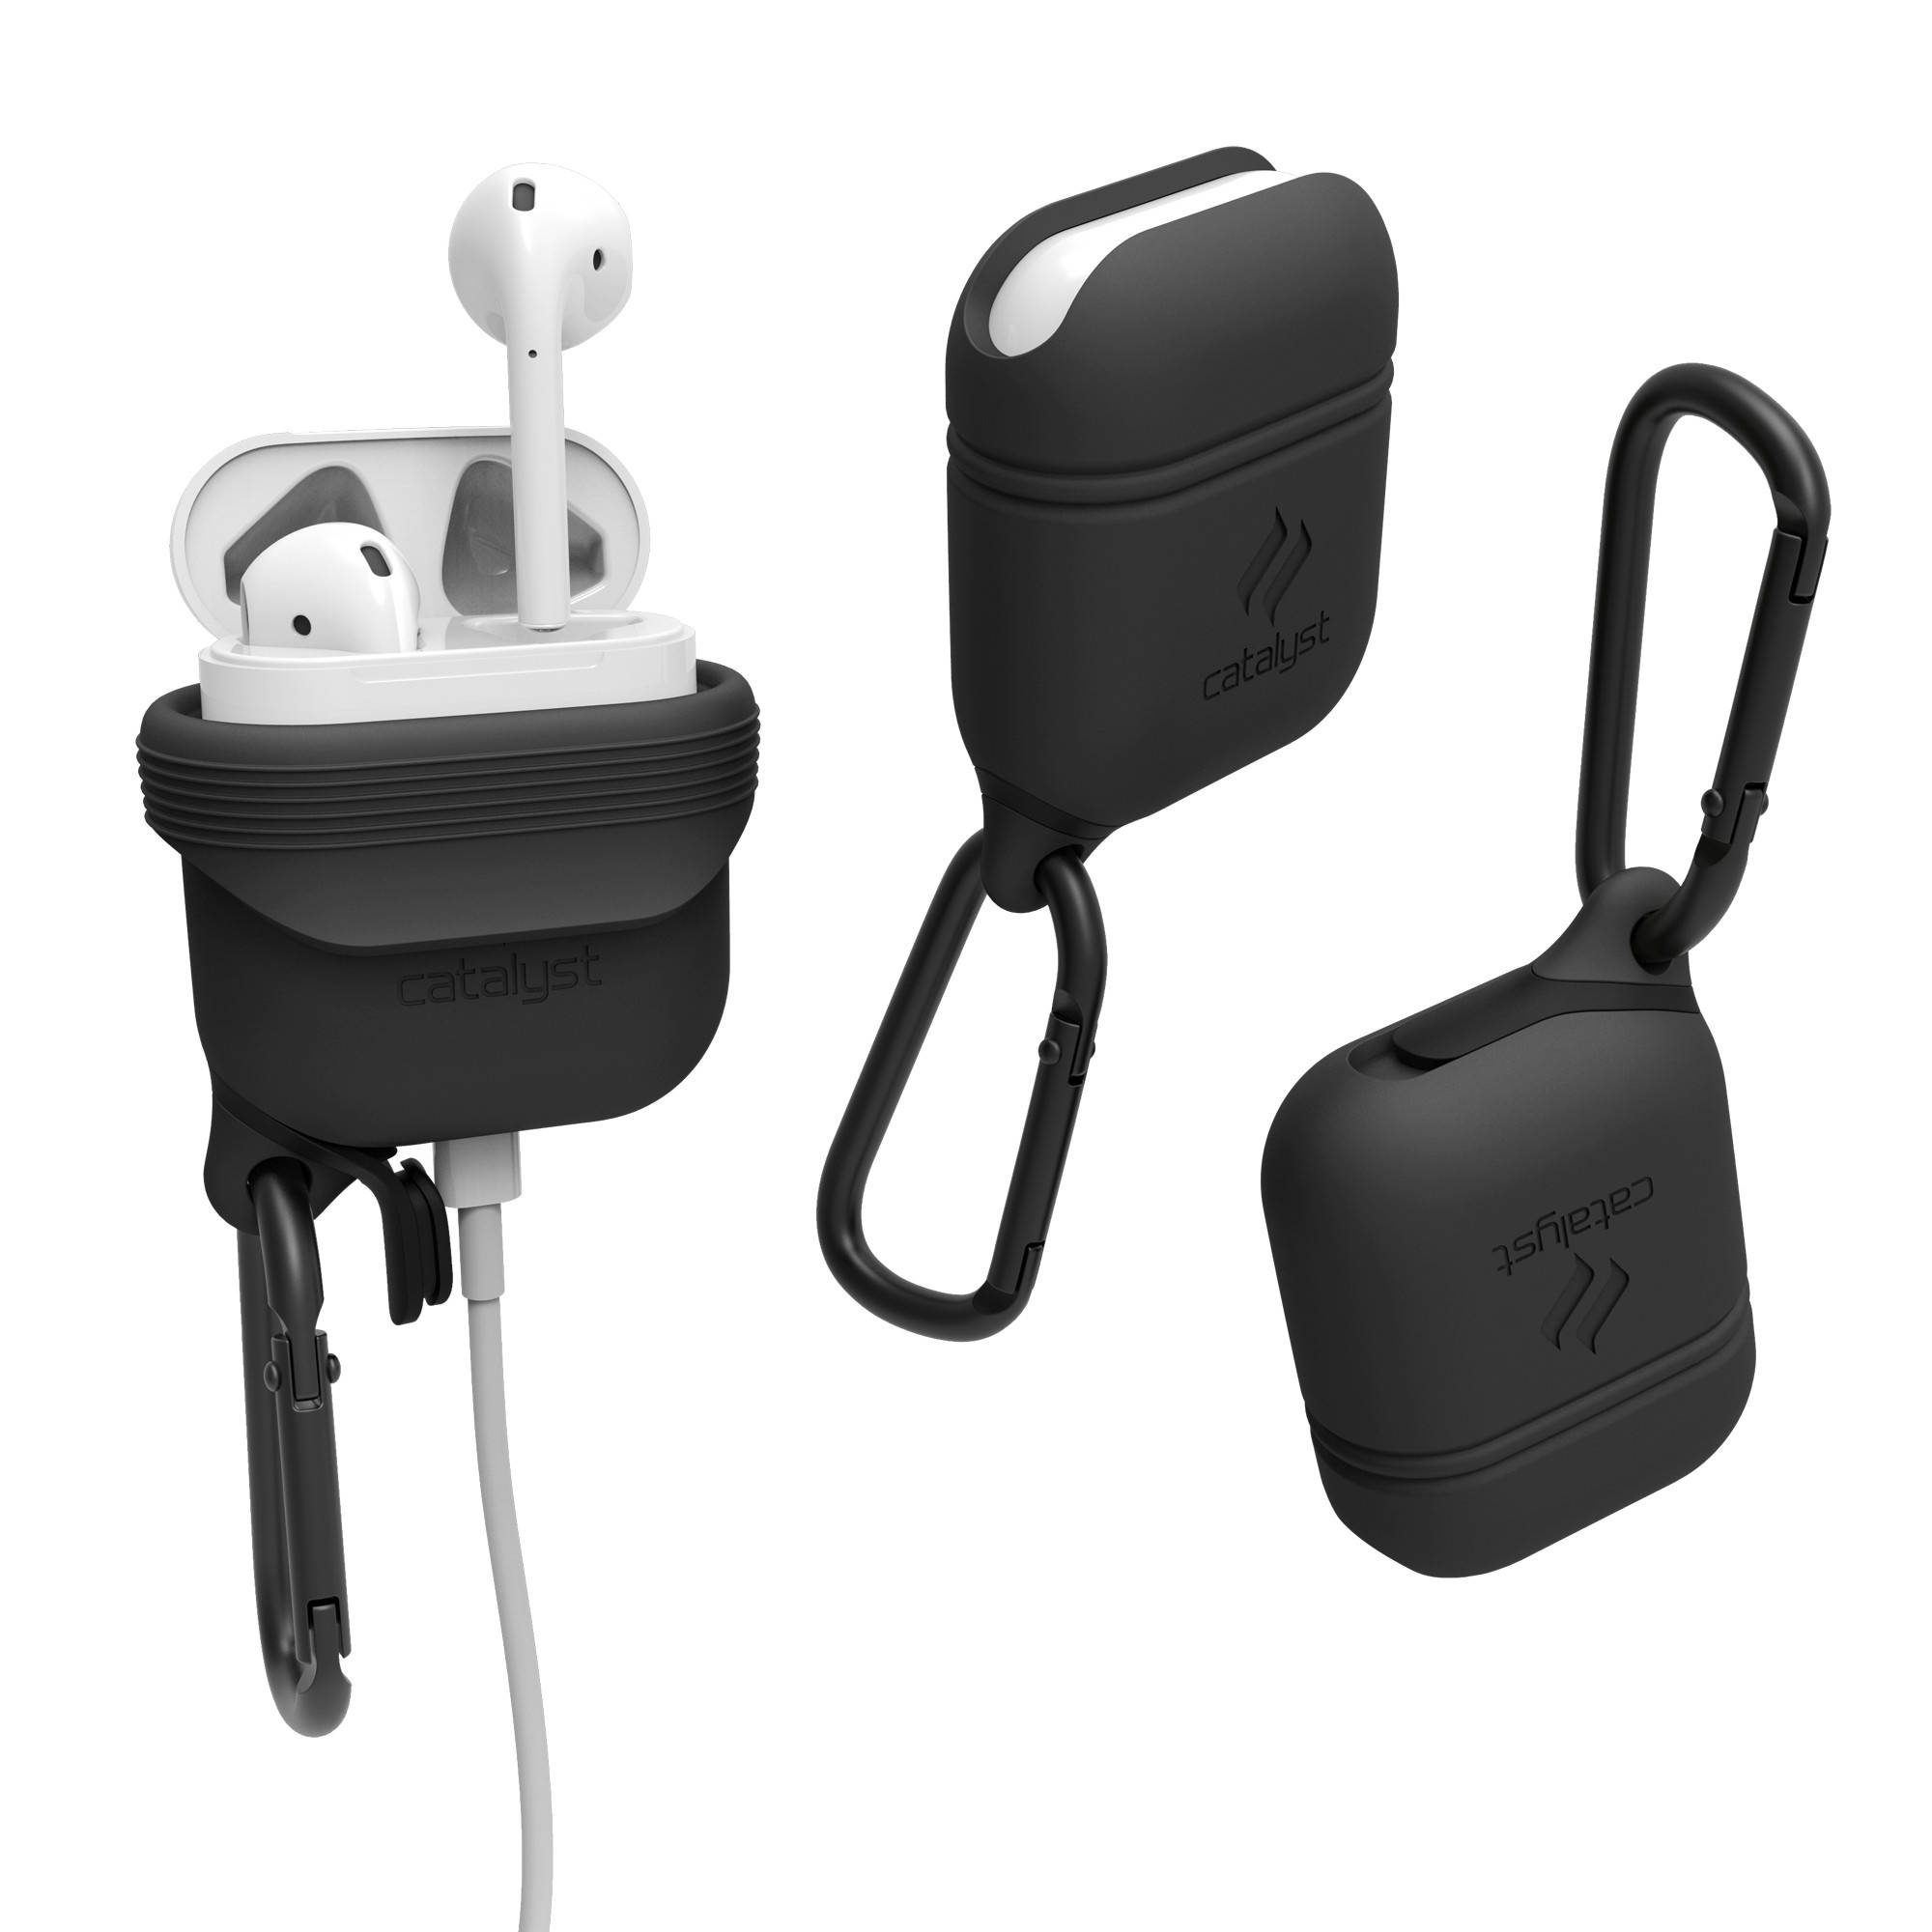 best service b6445 77338 Catalyst Case for Apple AirPods (Slate Gray)